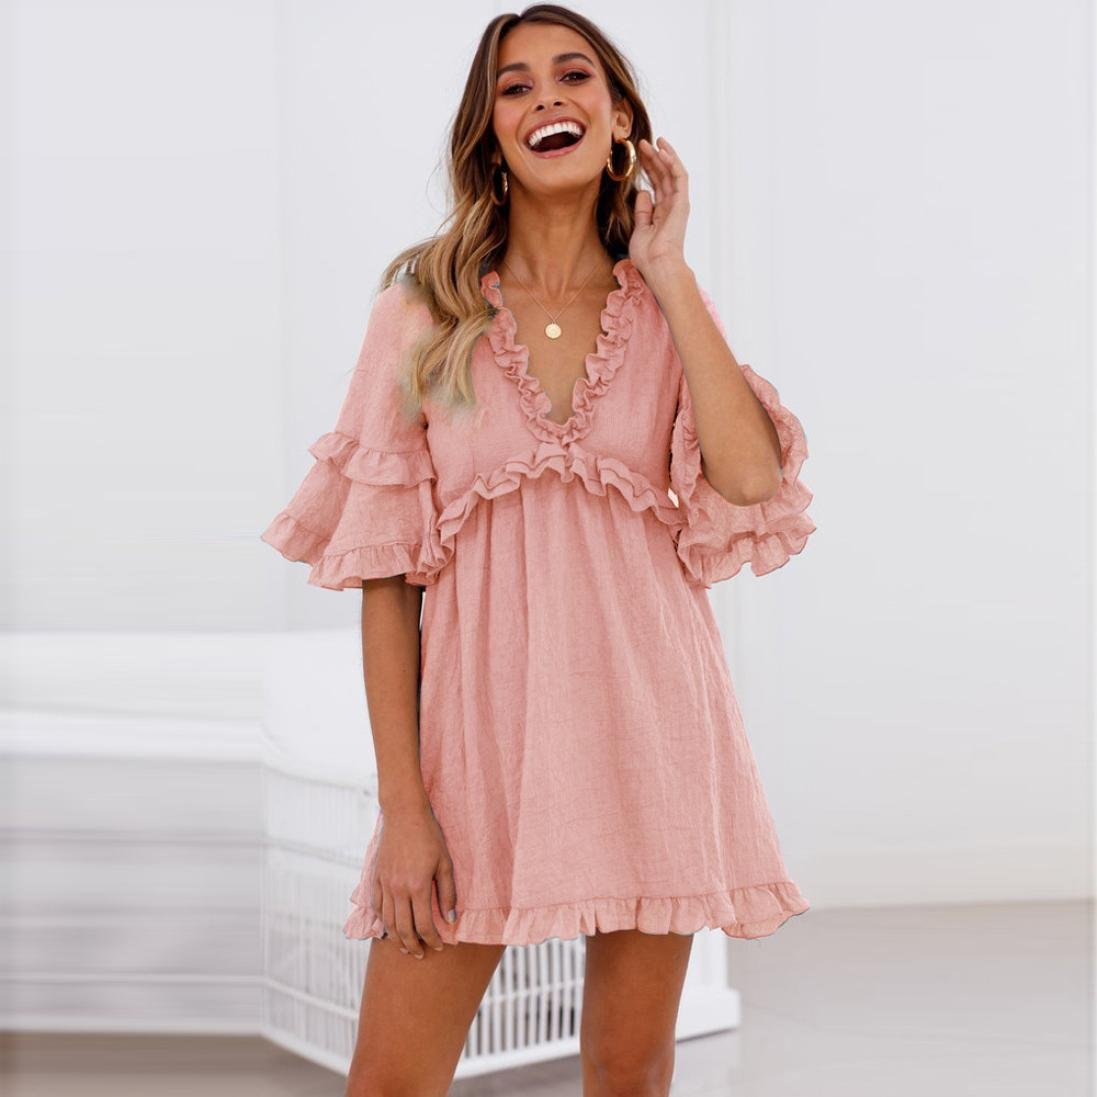 Baby Doll Dresses For Women - Baby Viewer